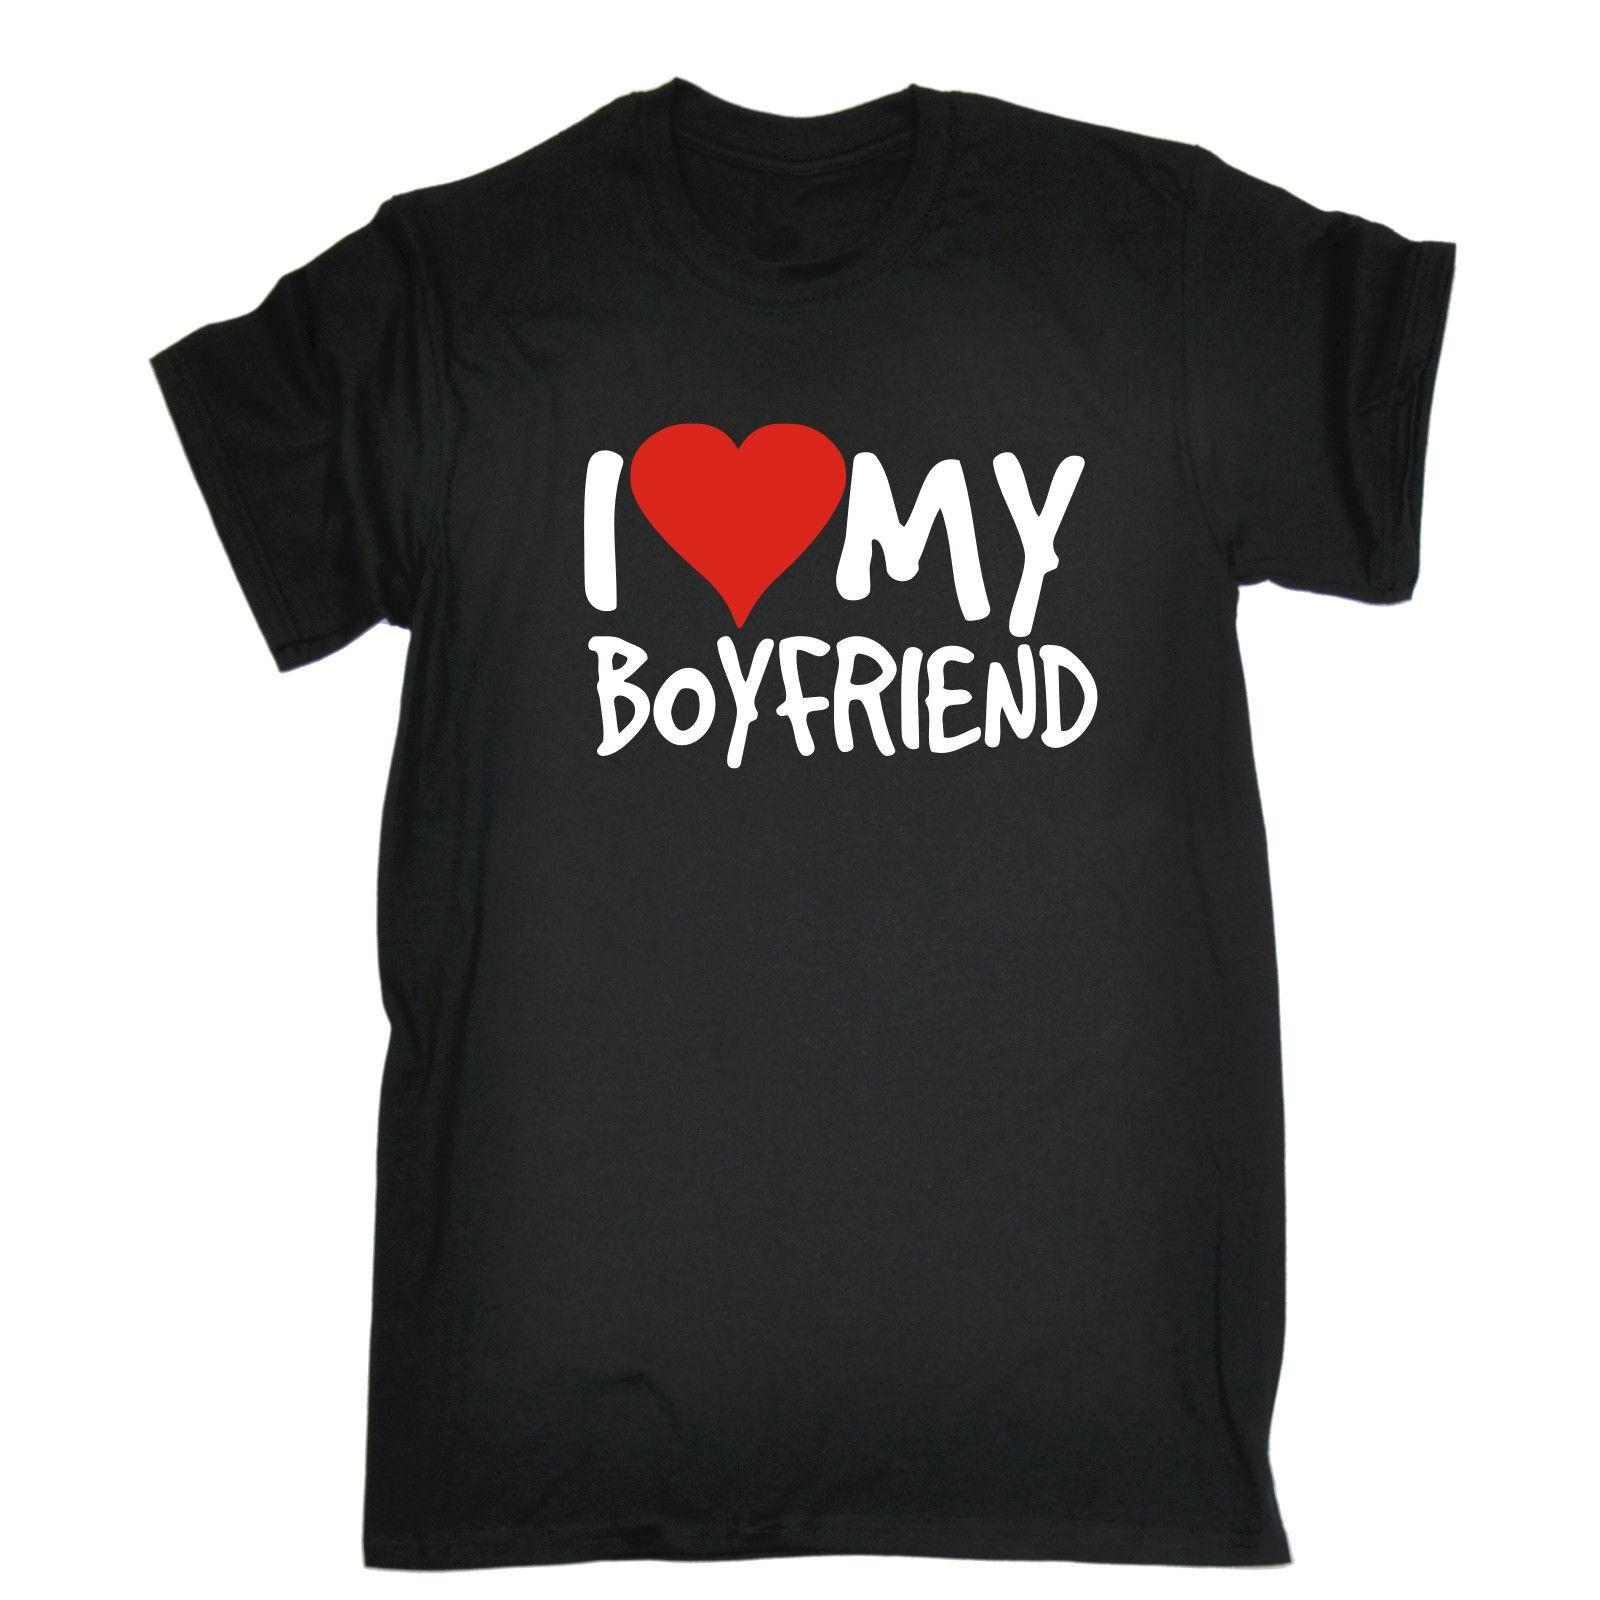 I Love My Boyfriend MENS T SHIRT Tee Birthday Gift Girlfriend Wife Partner Funny Cool Shirts Designs Best Fun Shirt Buy Online From Gaobei10